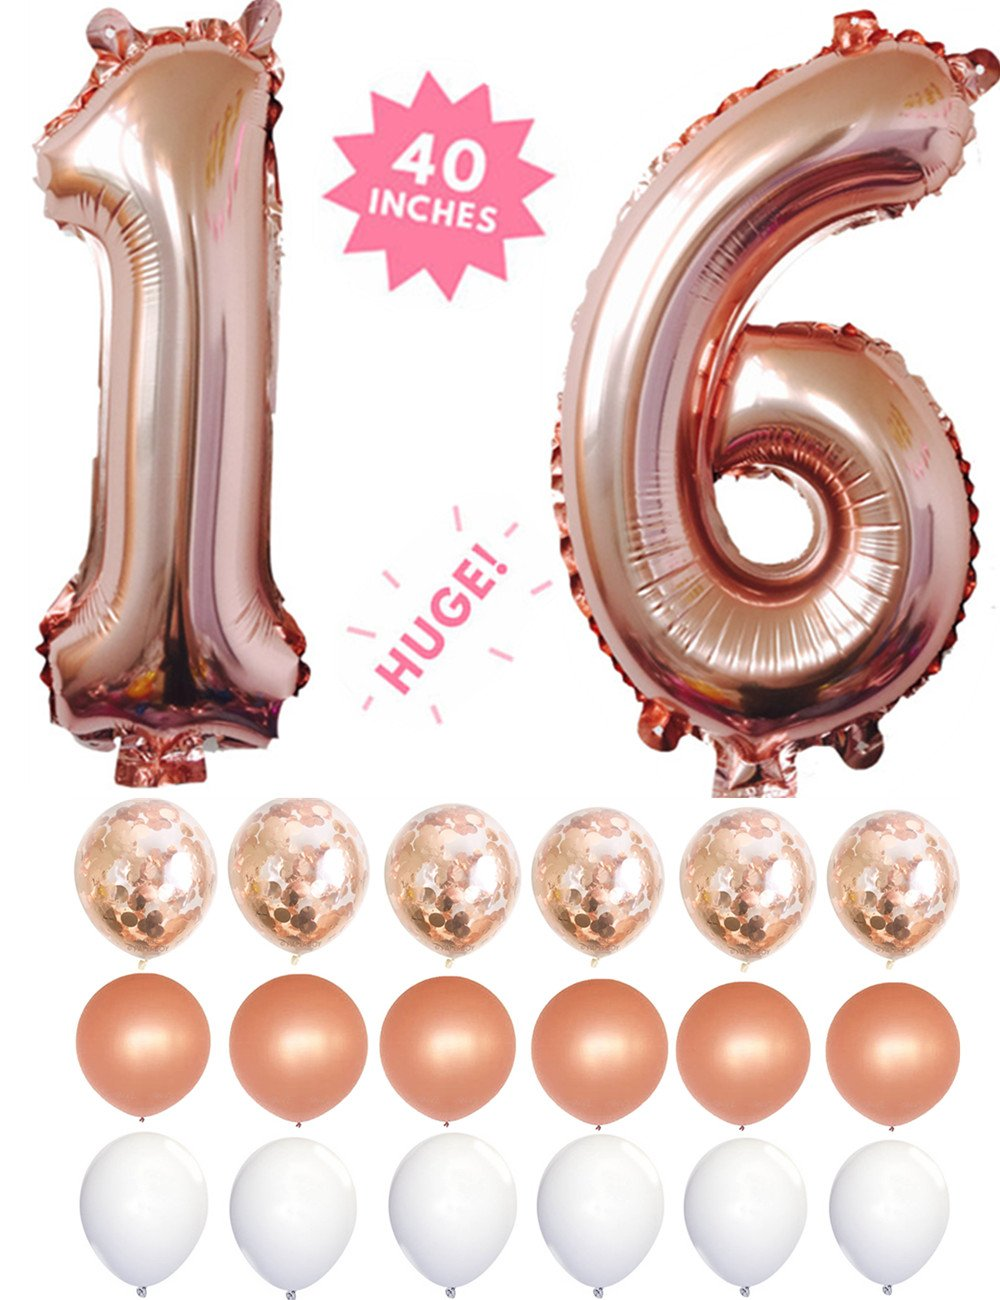 16 Rose Gold 40 Inch Huge Giant Number Balloons Foil Mylar Number Balloons With Set of 6 Matte Rose Gold Confetti Balloons & 12 Latex Balloons For Anniversary,16th Birthday Decorations